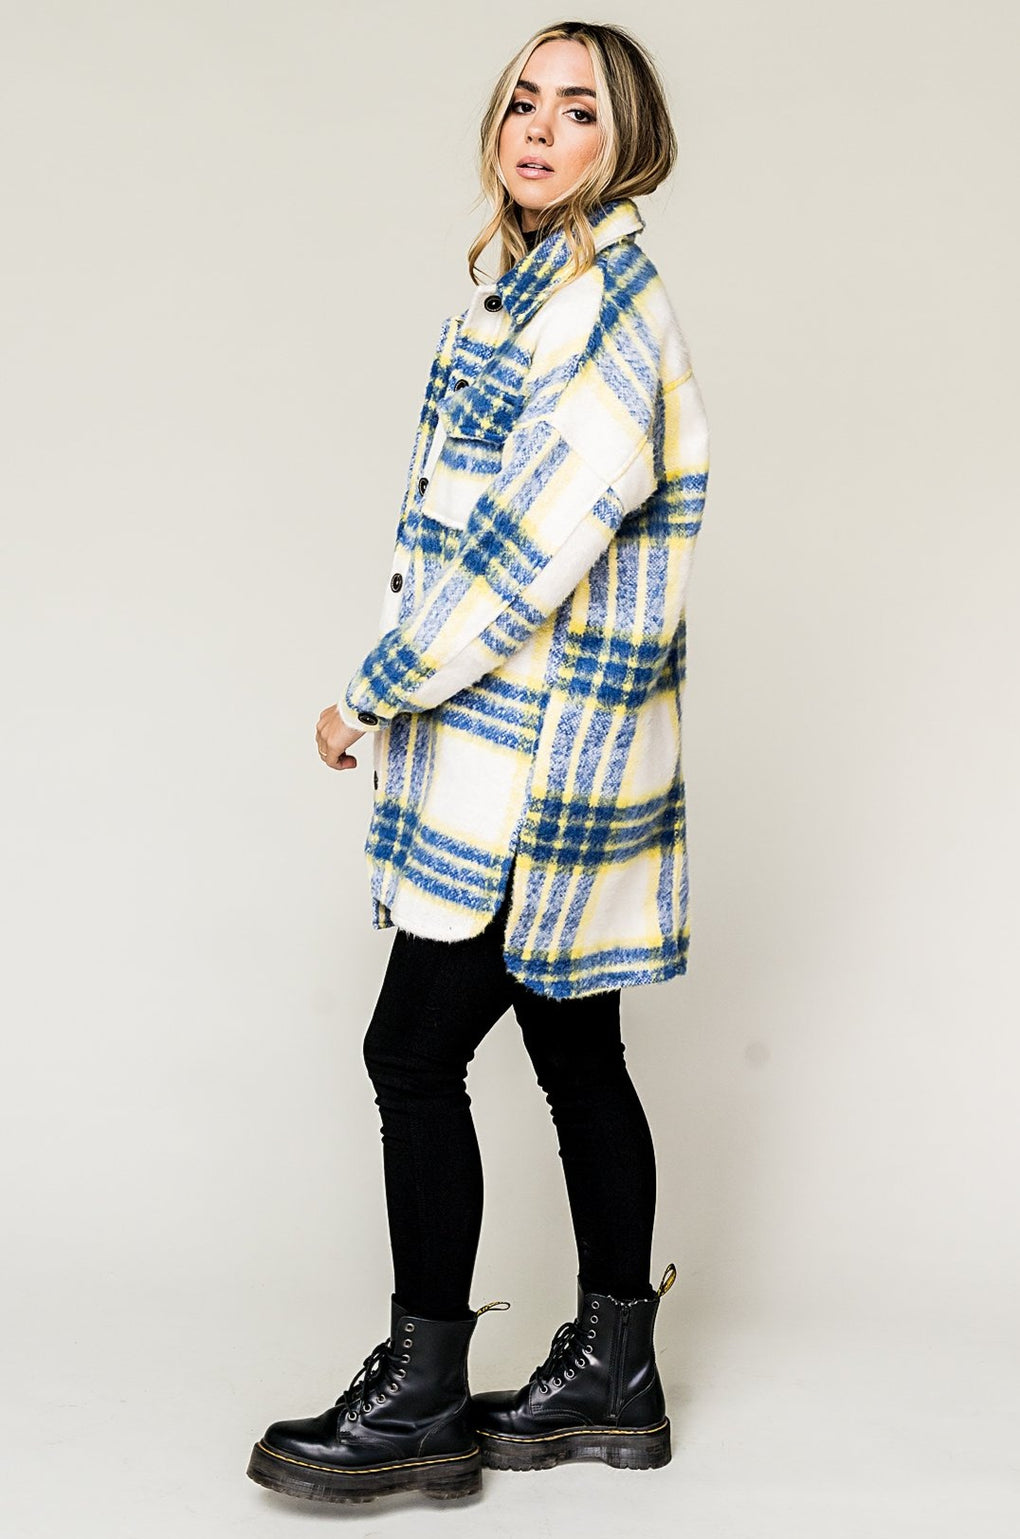 Scorpio Season Oversized Plaid Grunge Jacket